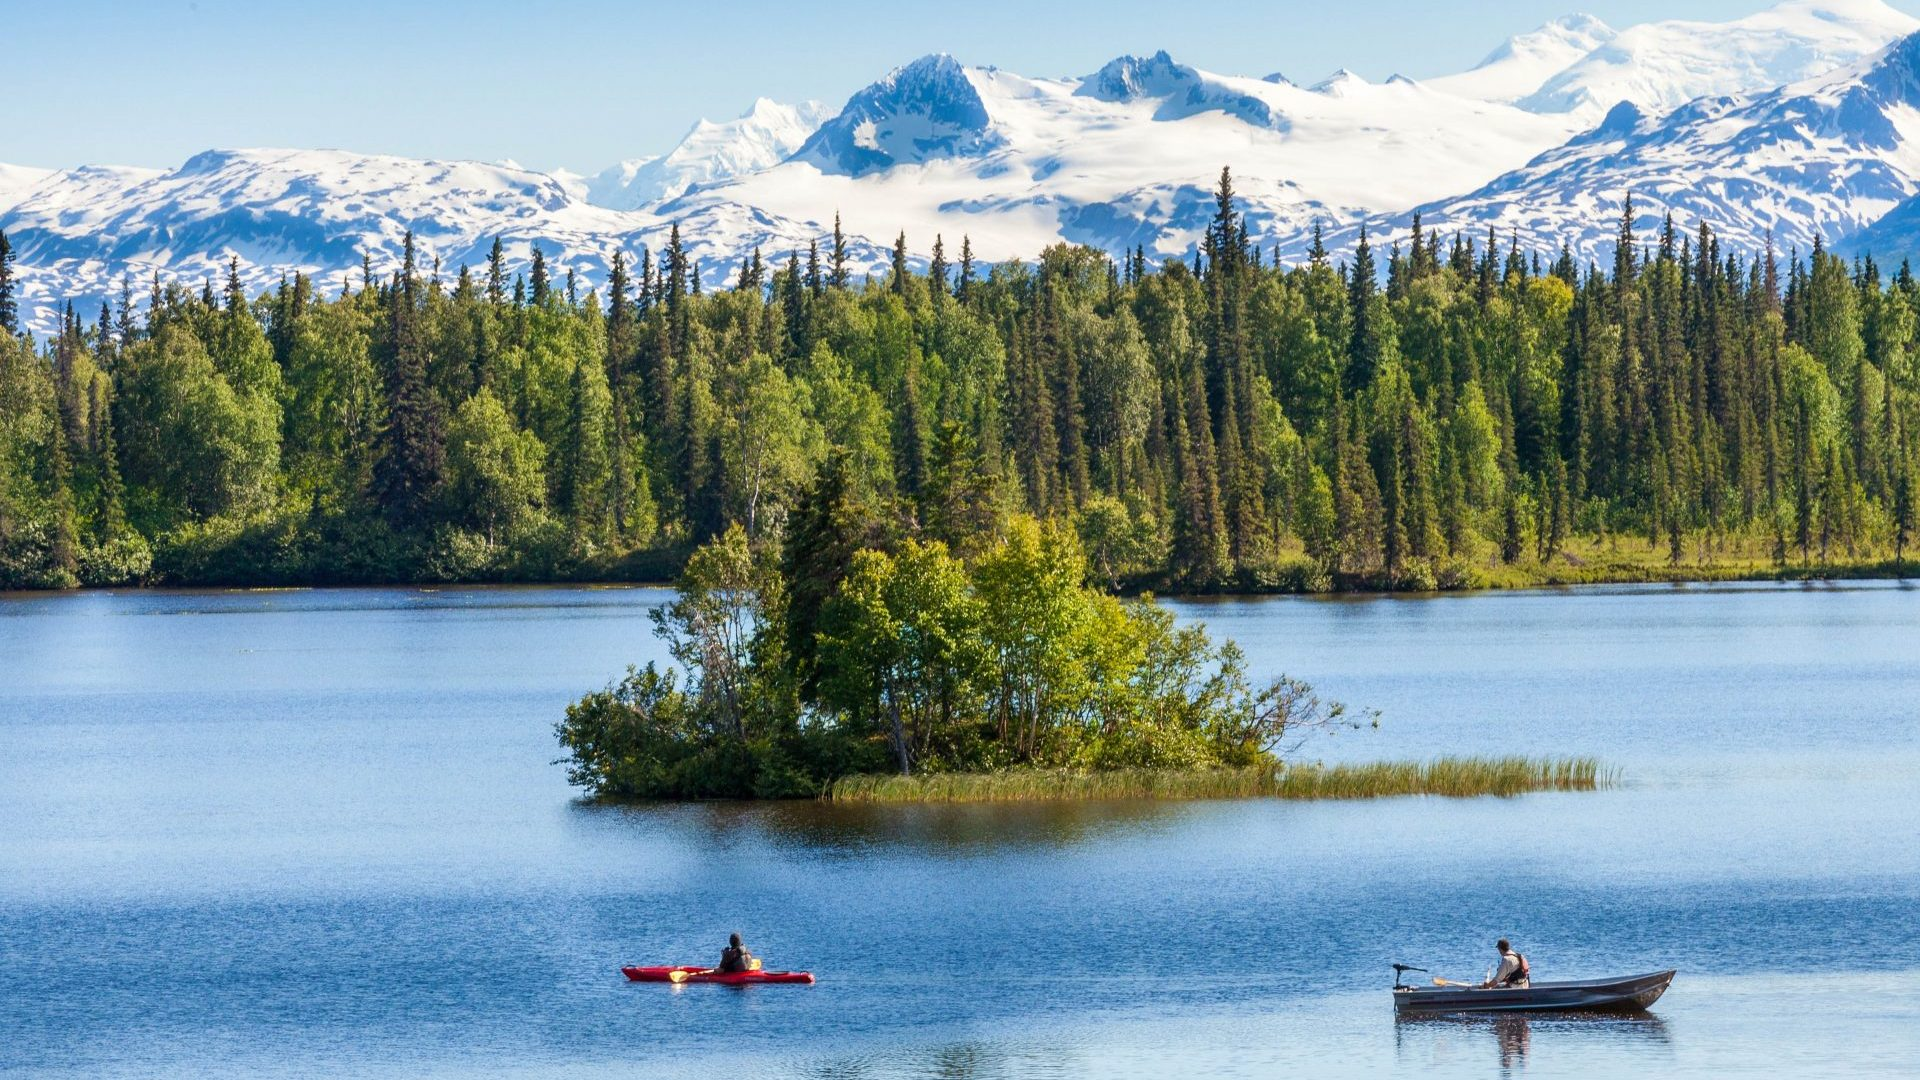 Kayakers and snowy peaks near Winterlake Lodge, Alaska with GeoEx